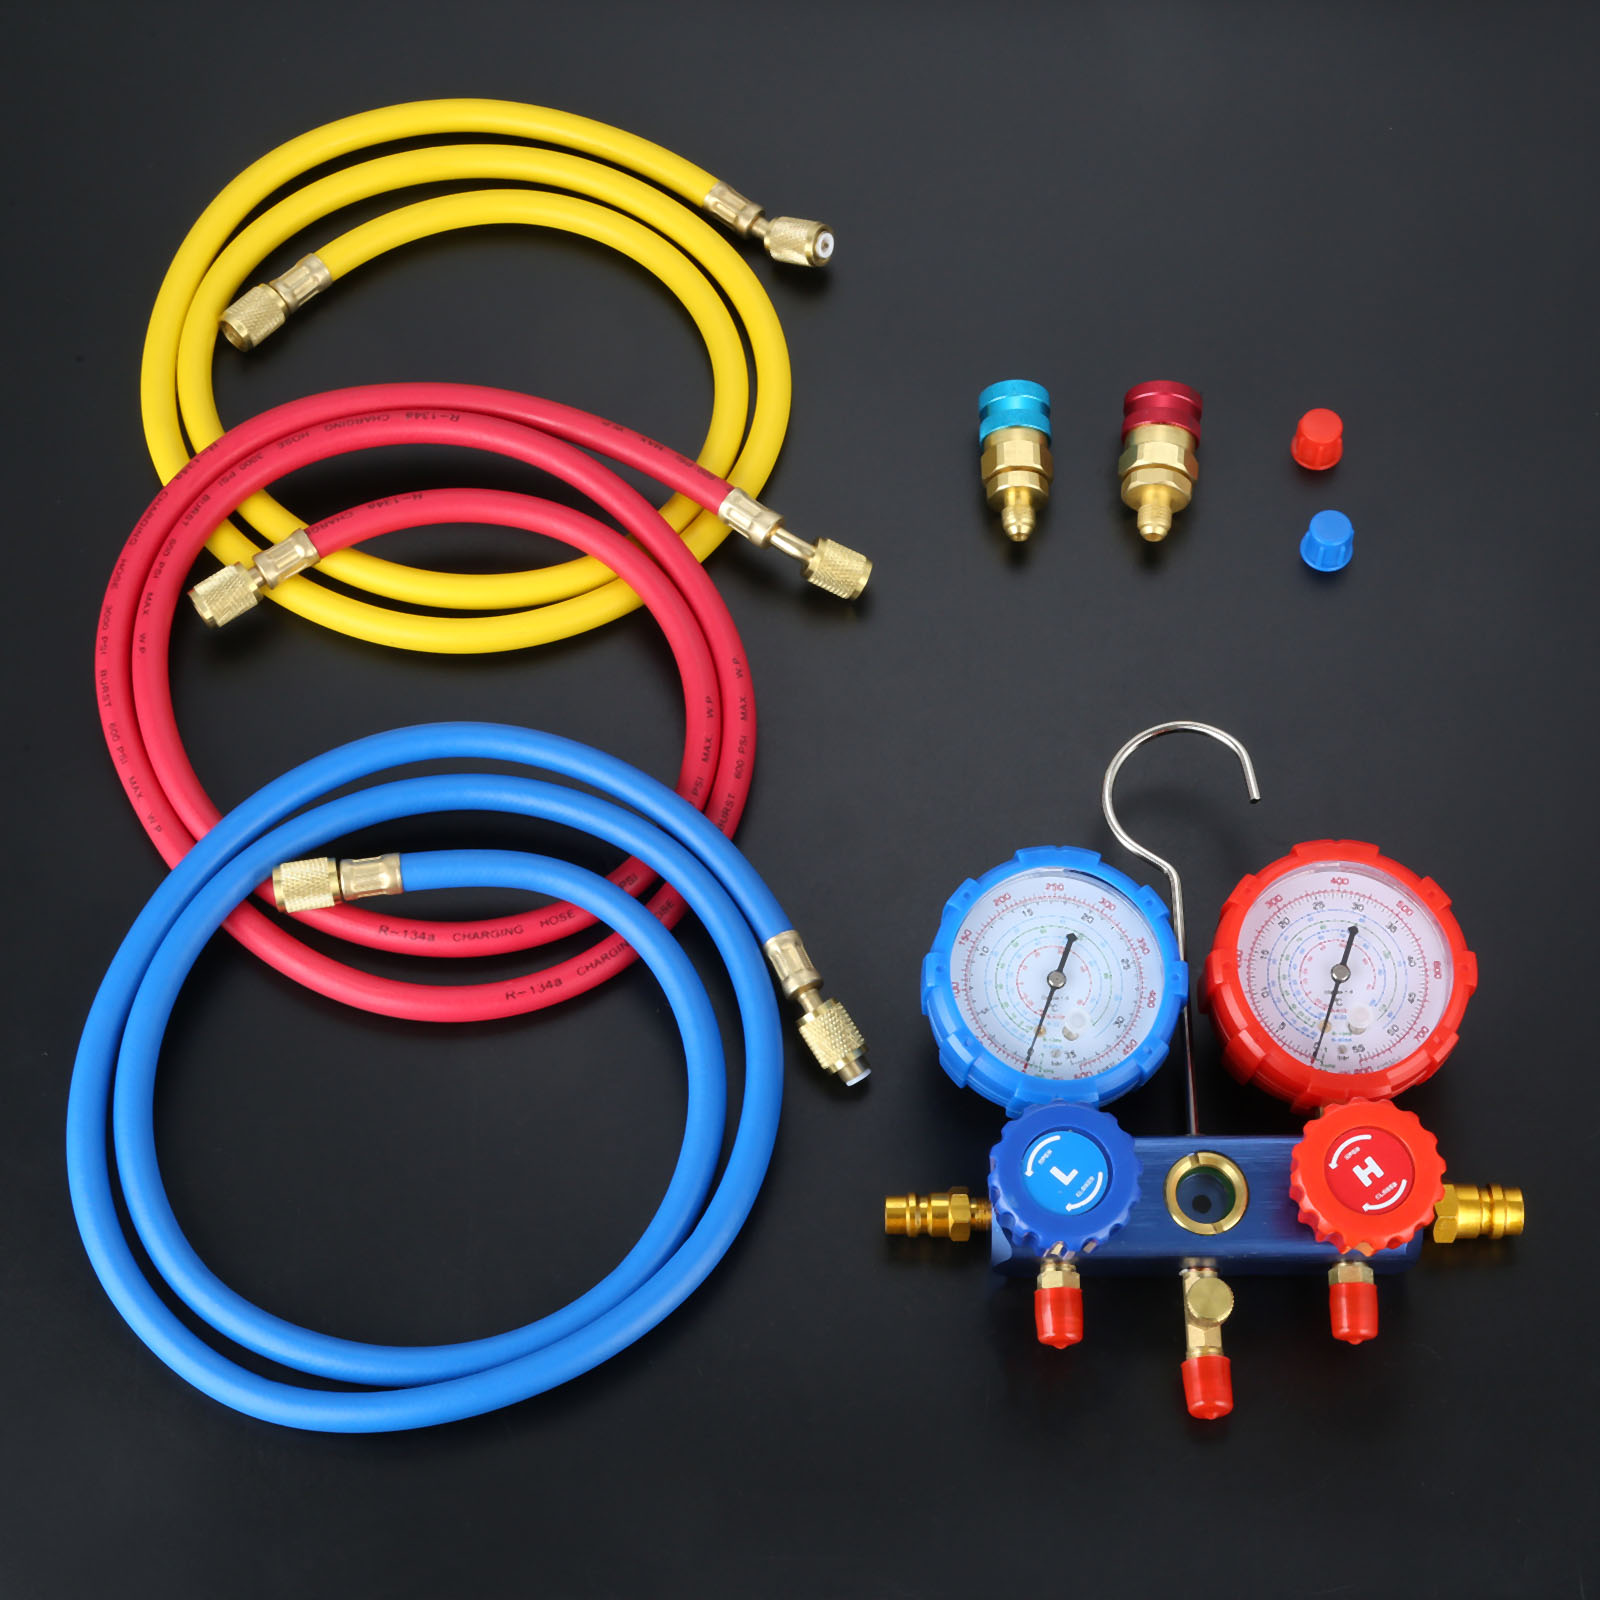 Yetaha Air Conditioning Gauge Set Charging Hose A/C Quick Coupler Connect Valve R134A R134 R12 R502 Refrigerant Tool Fitting wholesale price different quality copper 100 pcs a c valve core valves for ac r134a r12 lot of white green 2 colors